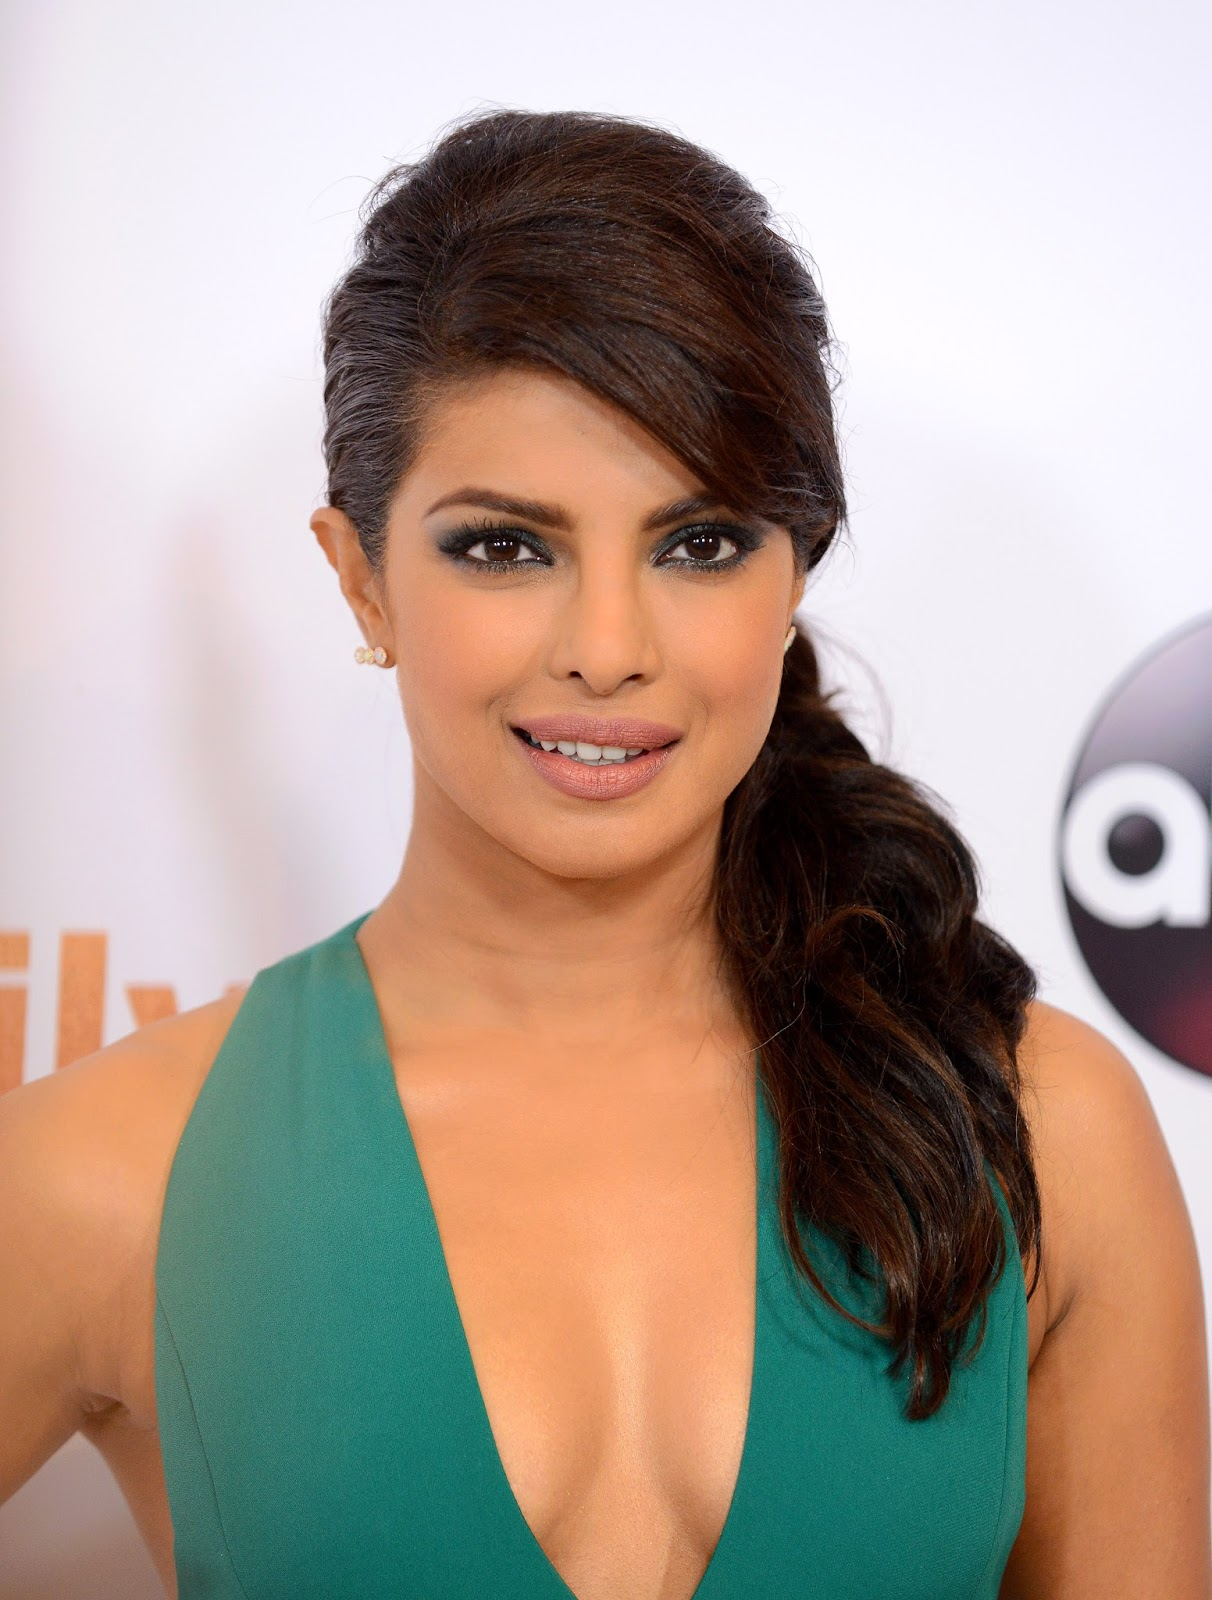 Hot Actress Priyanka Chopra Sizzling Sills In Green Gown